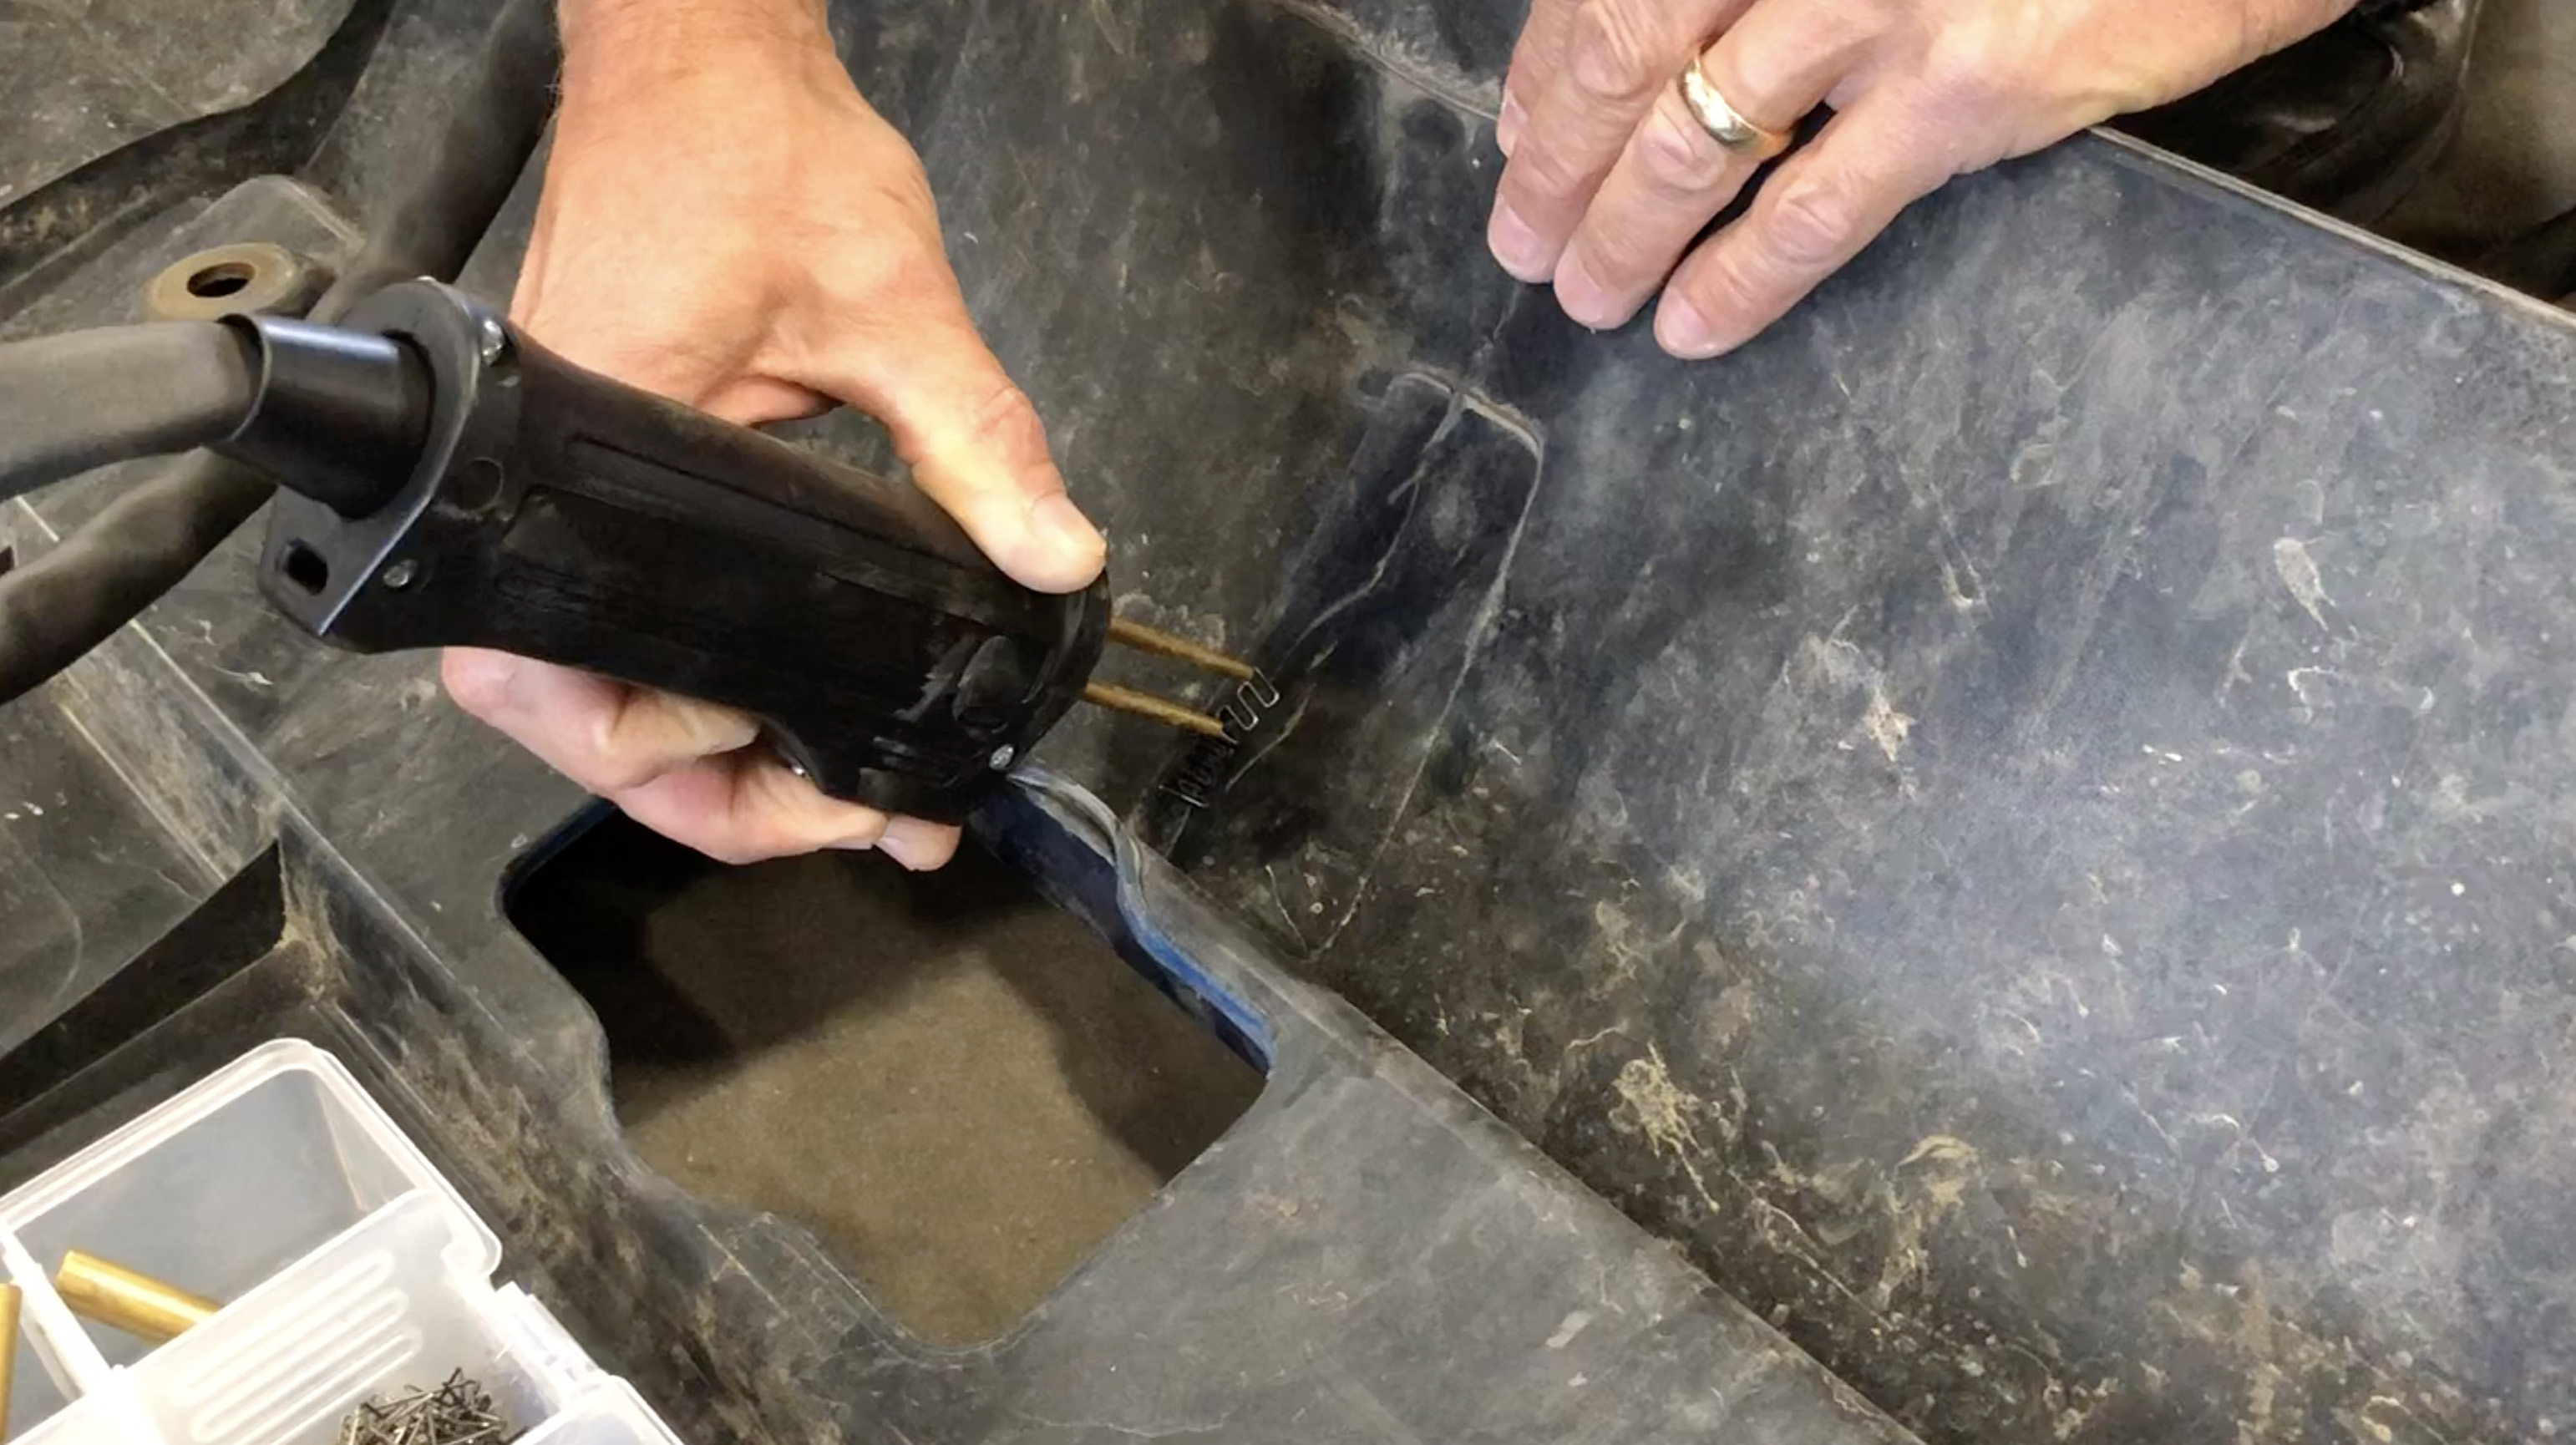 Shark Industries' Pro Tack Plastic Welder: The Solution for Repairing Plastic Components on Heavy Duty Trucks